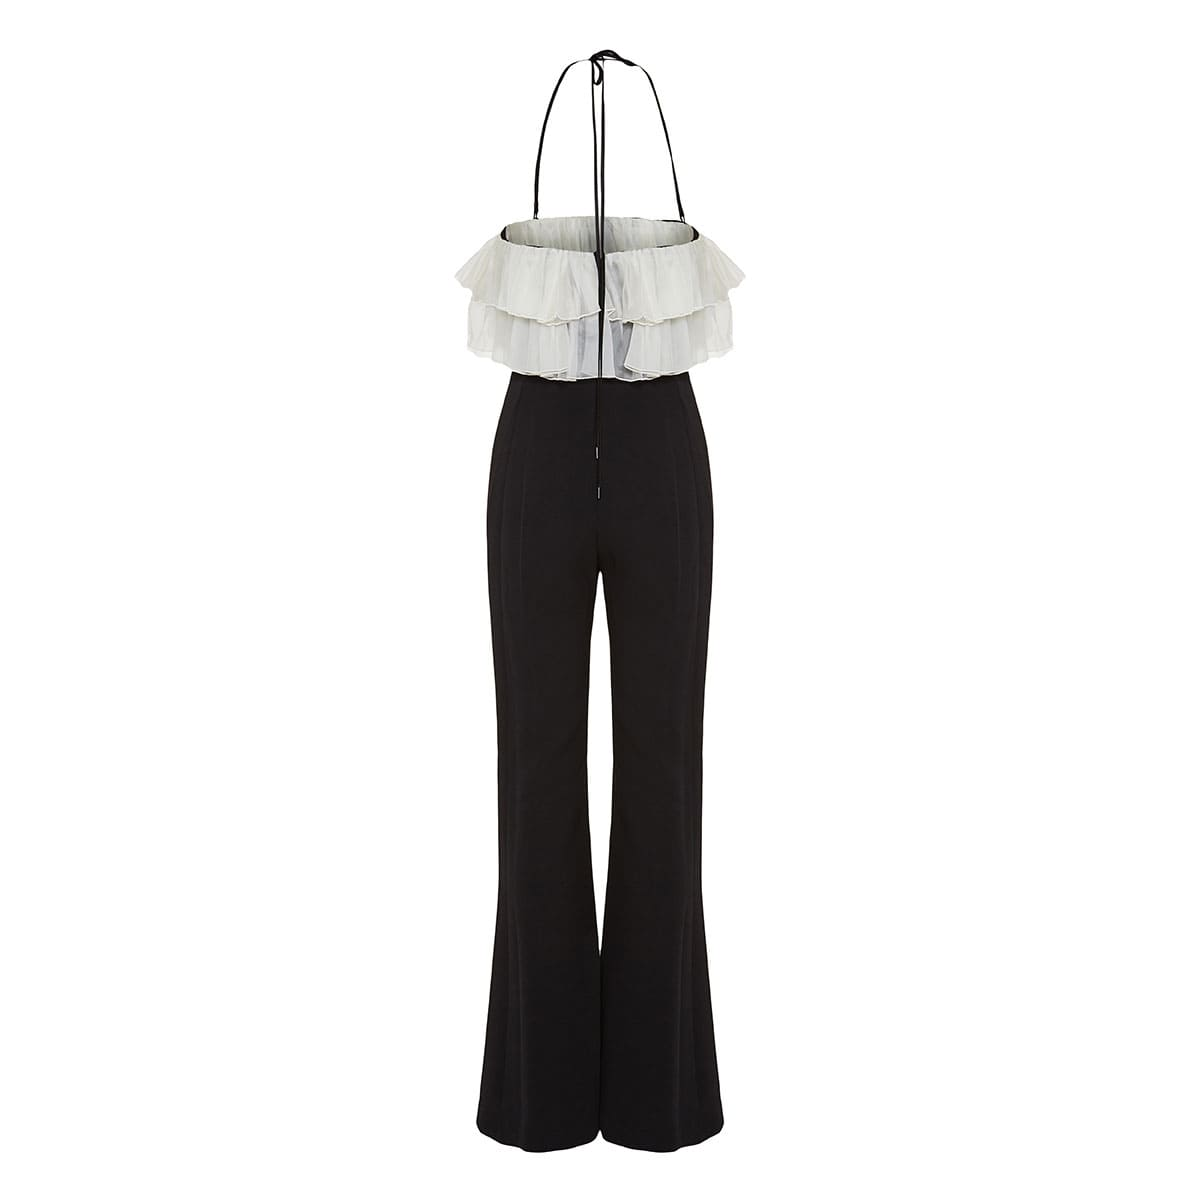 Two-tone ruffled flared jumpsuit